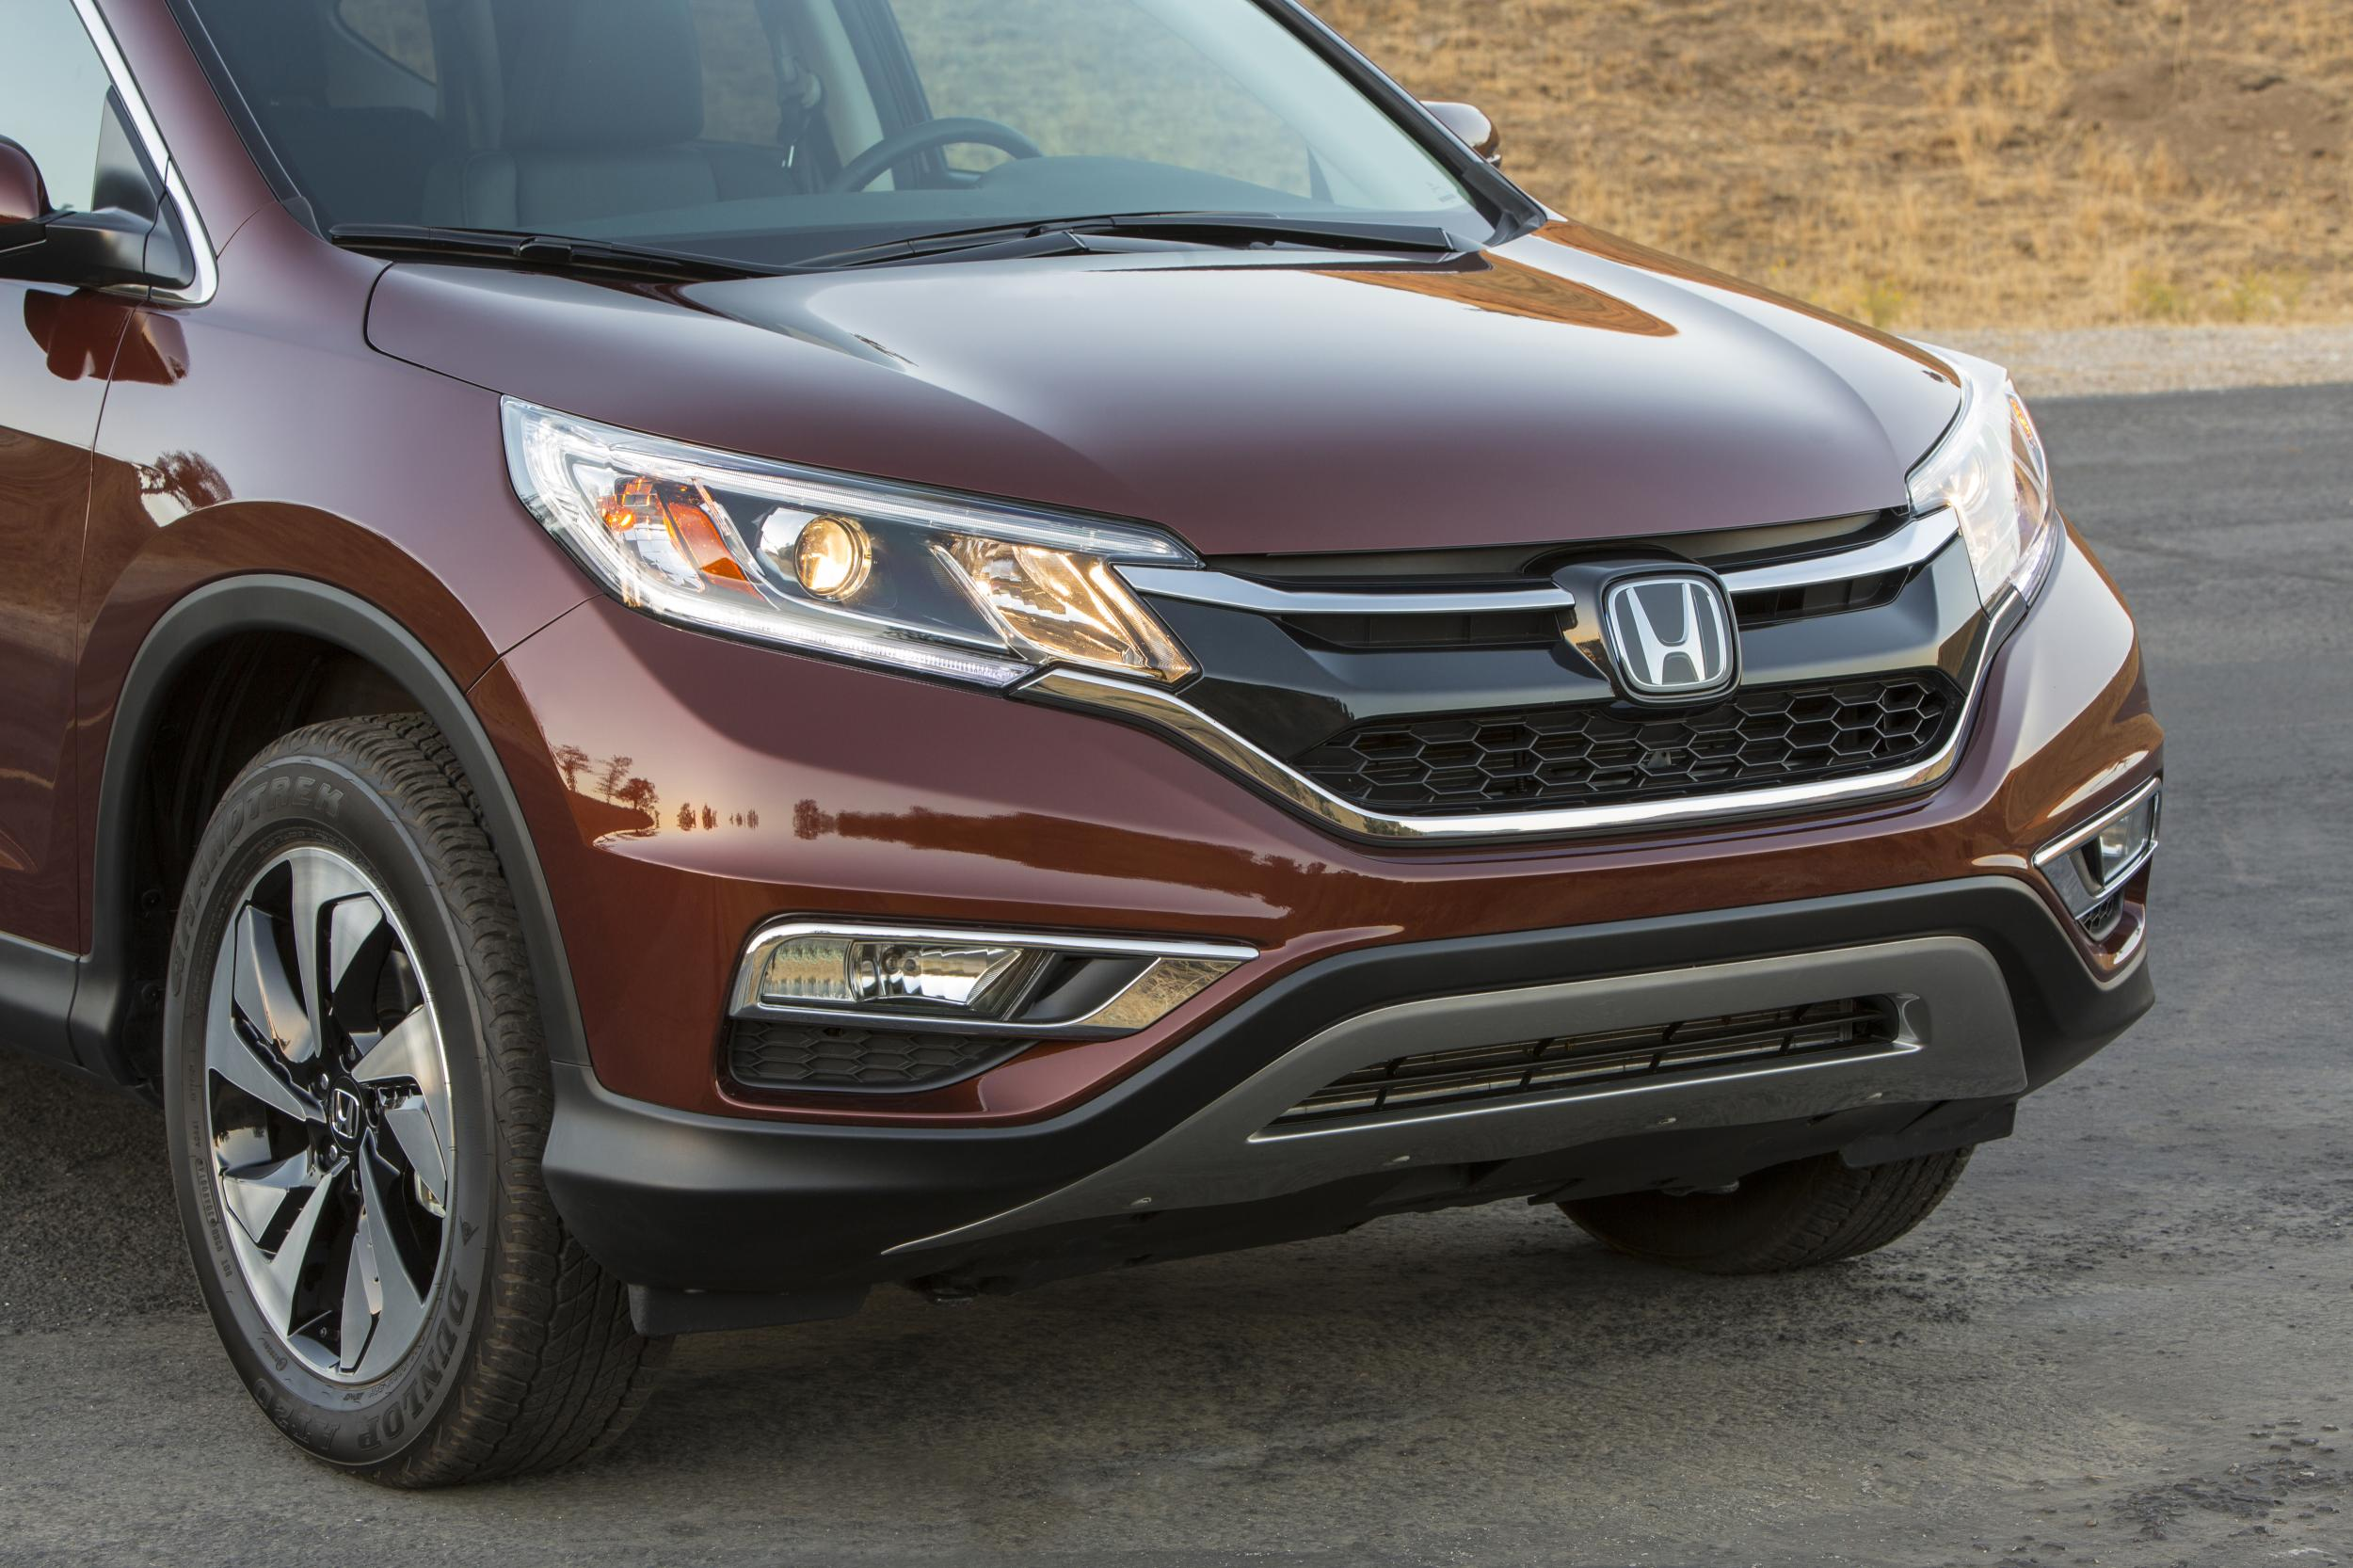 2016 Honda Crv For Sale >> 2015 Honda CR-V Facelift Pricing, Specifications Announced - autoevolution